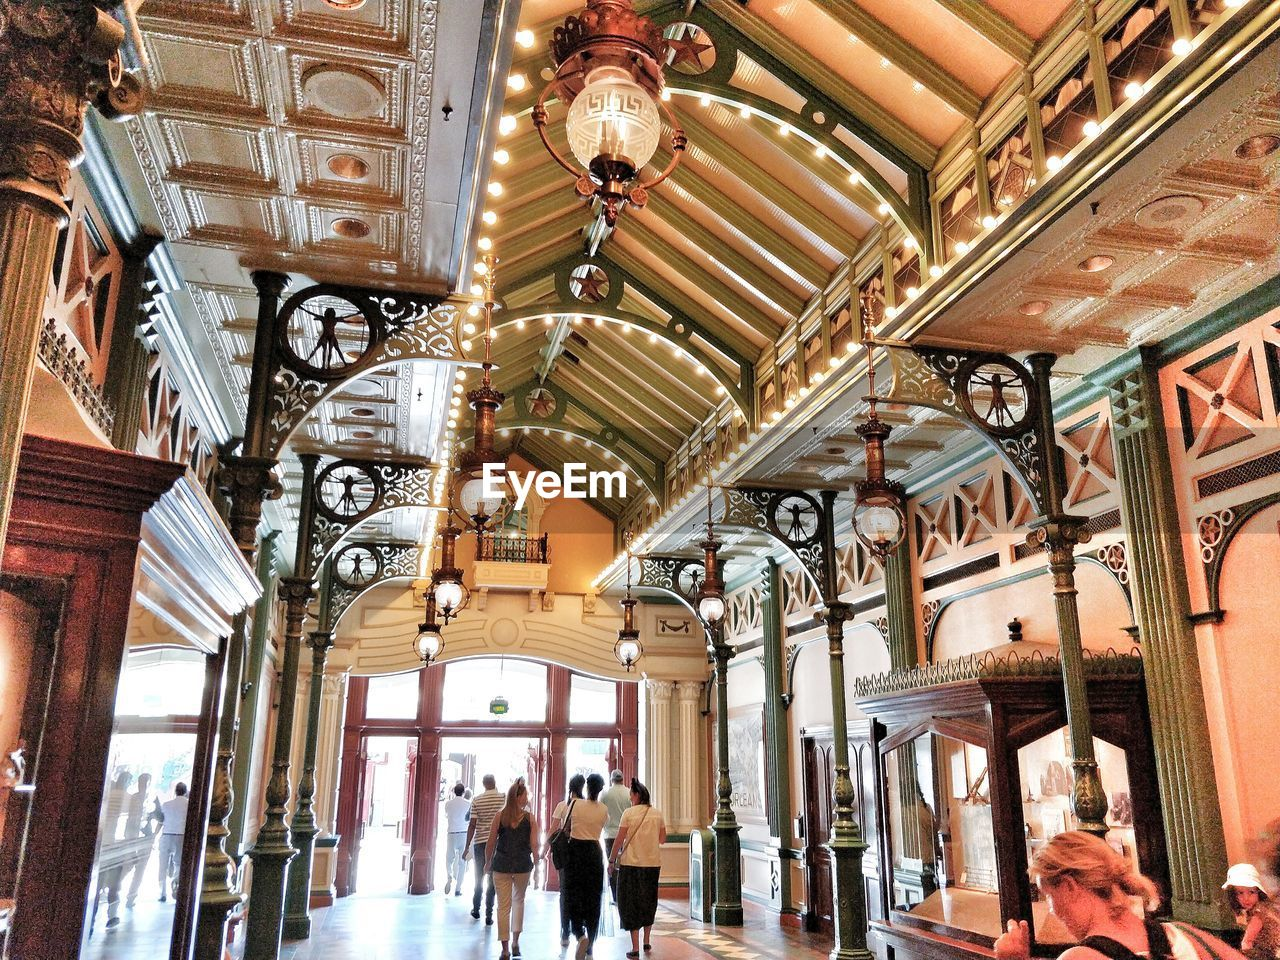 group of people, architecture, ceiling, indoors, built structure, lighting equipment, women, real people, walking, men, travel destinations, adult, incidental people, travel, lifestyles, architectural column, shopping mall, day, hanging, shopping, ornate, consumerism, luxury